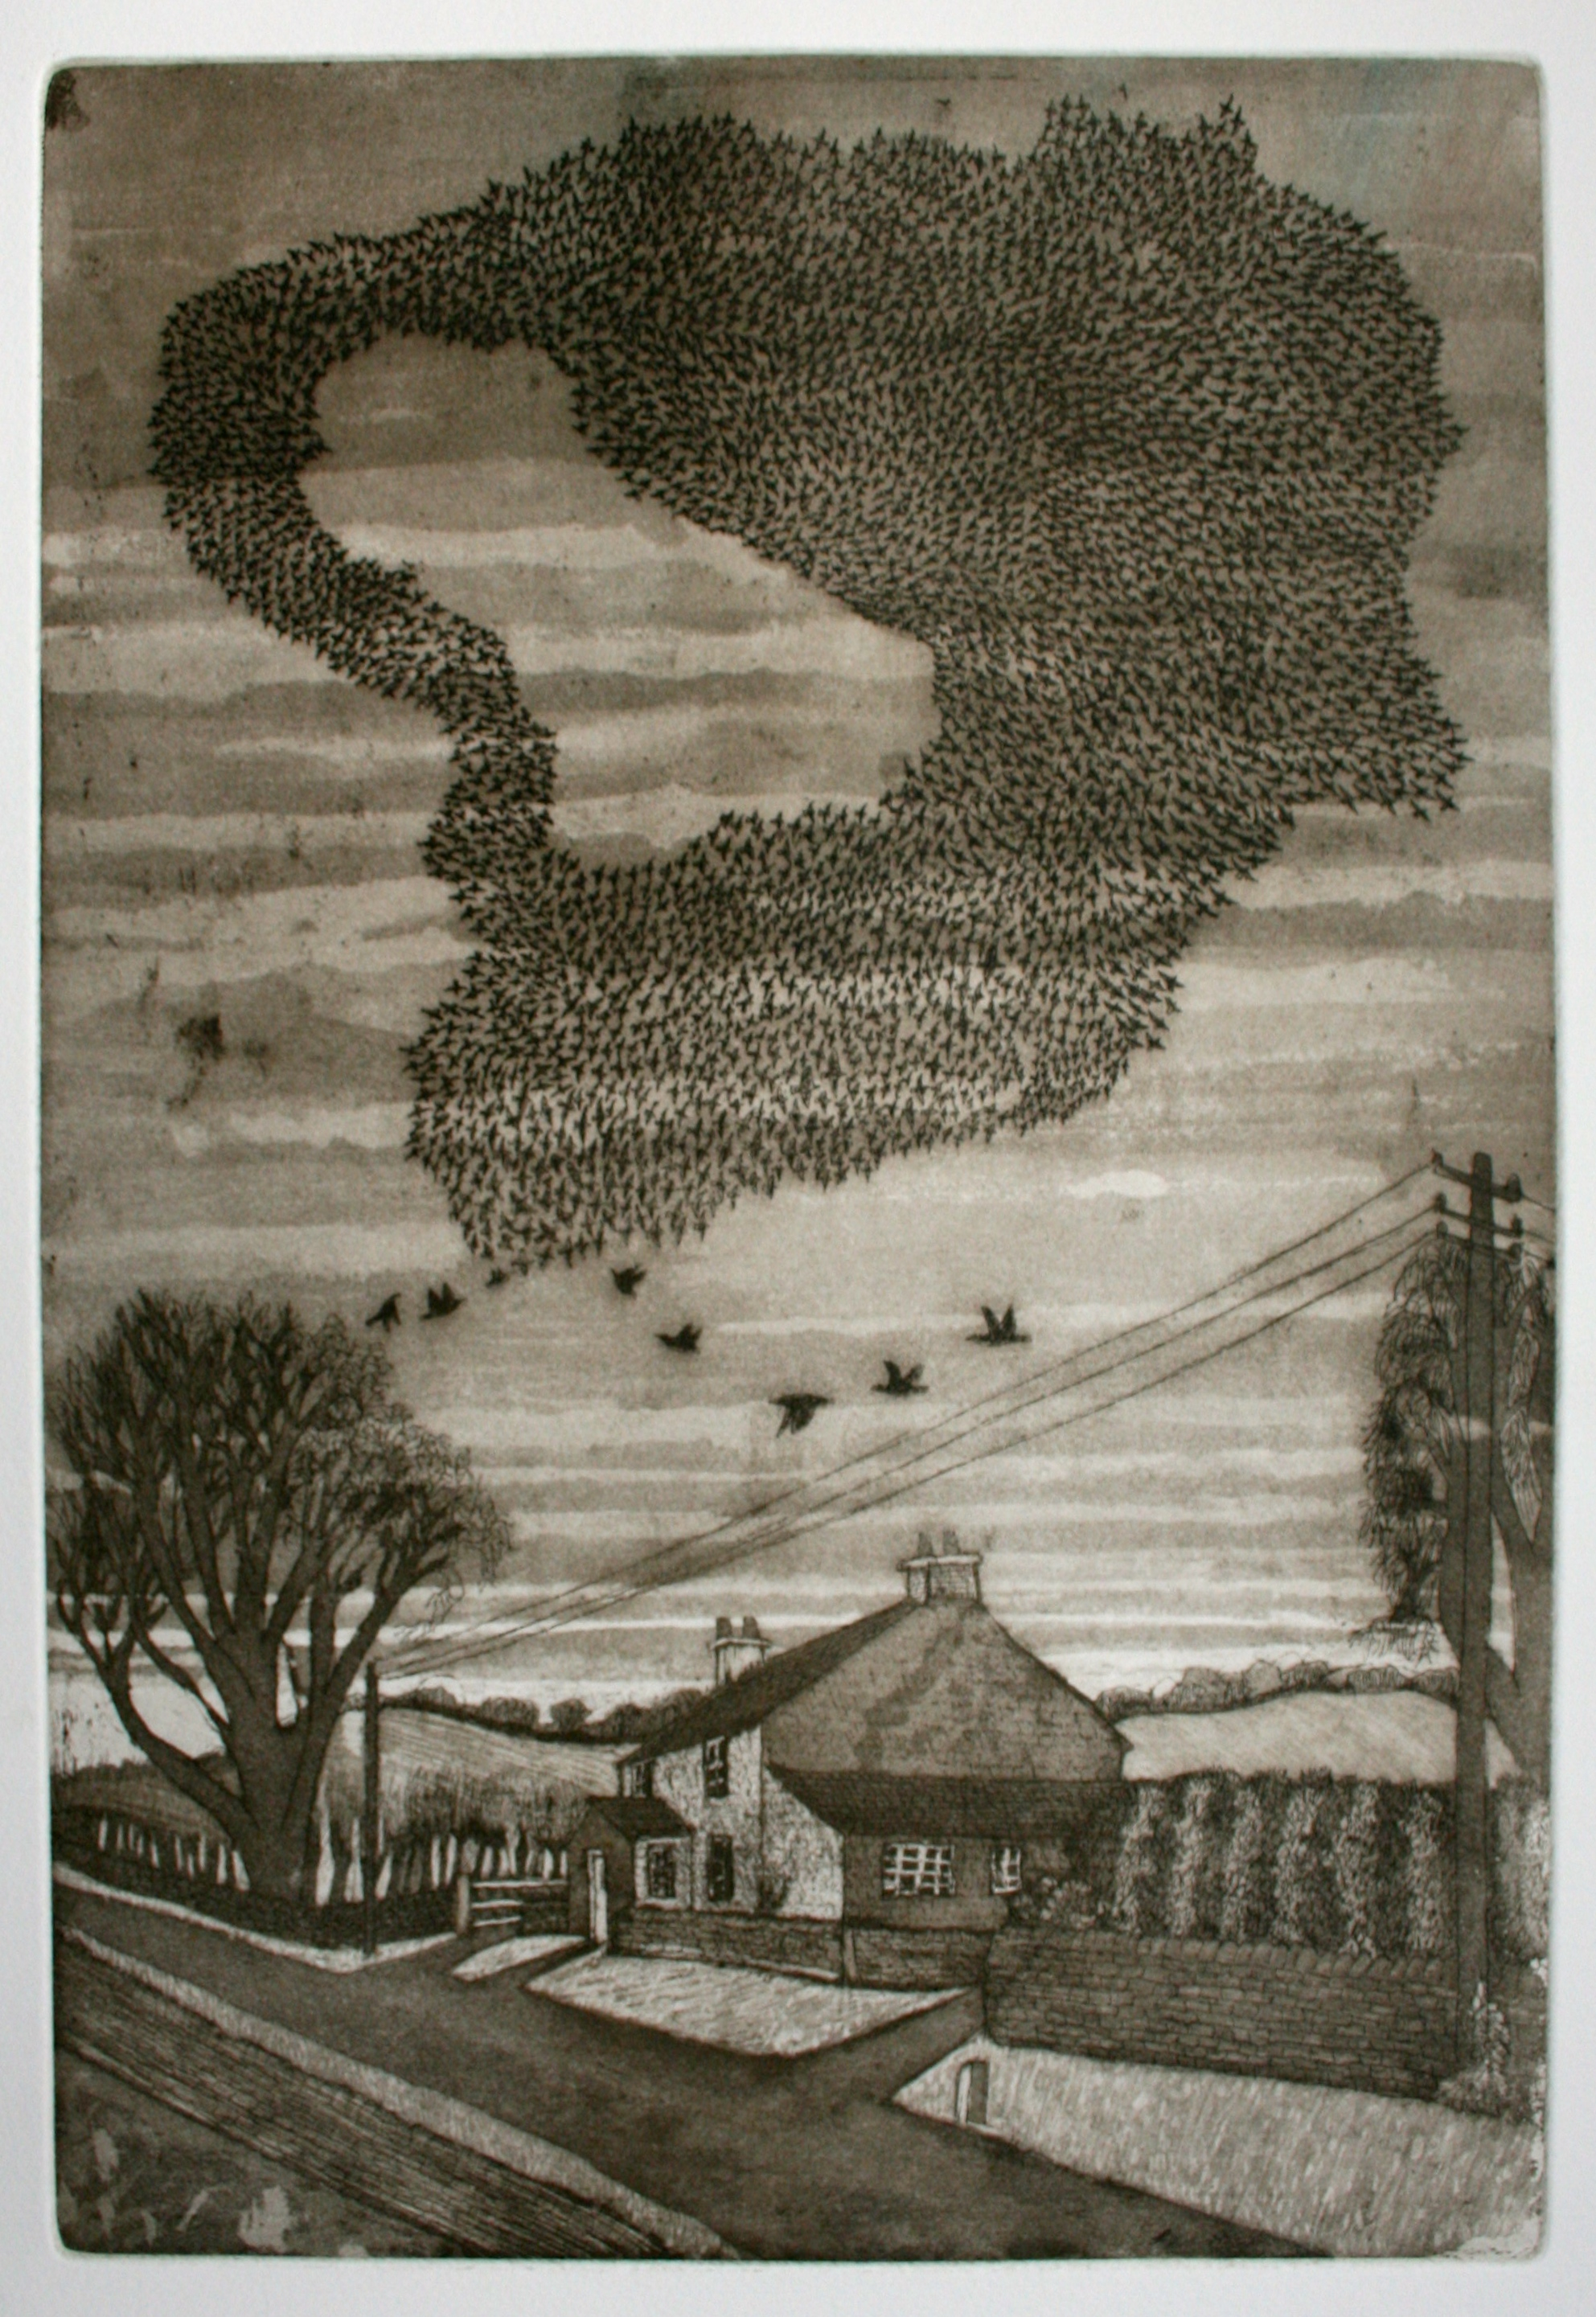 A murmuration in Gowland Lane